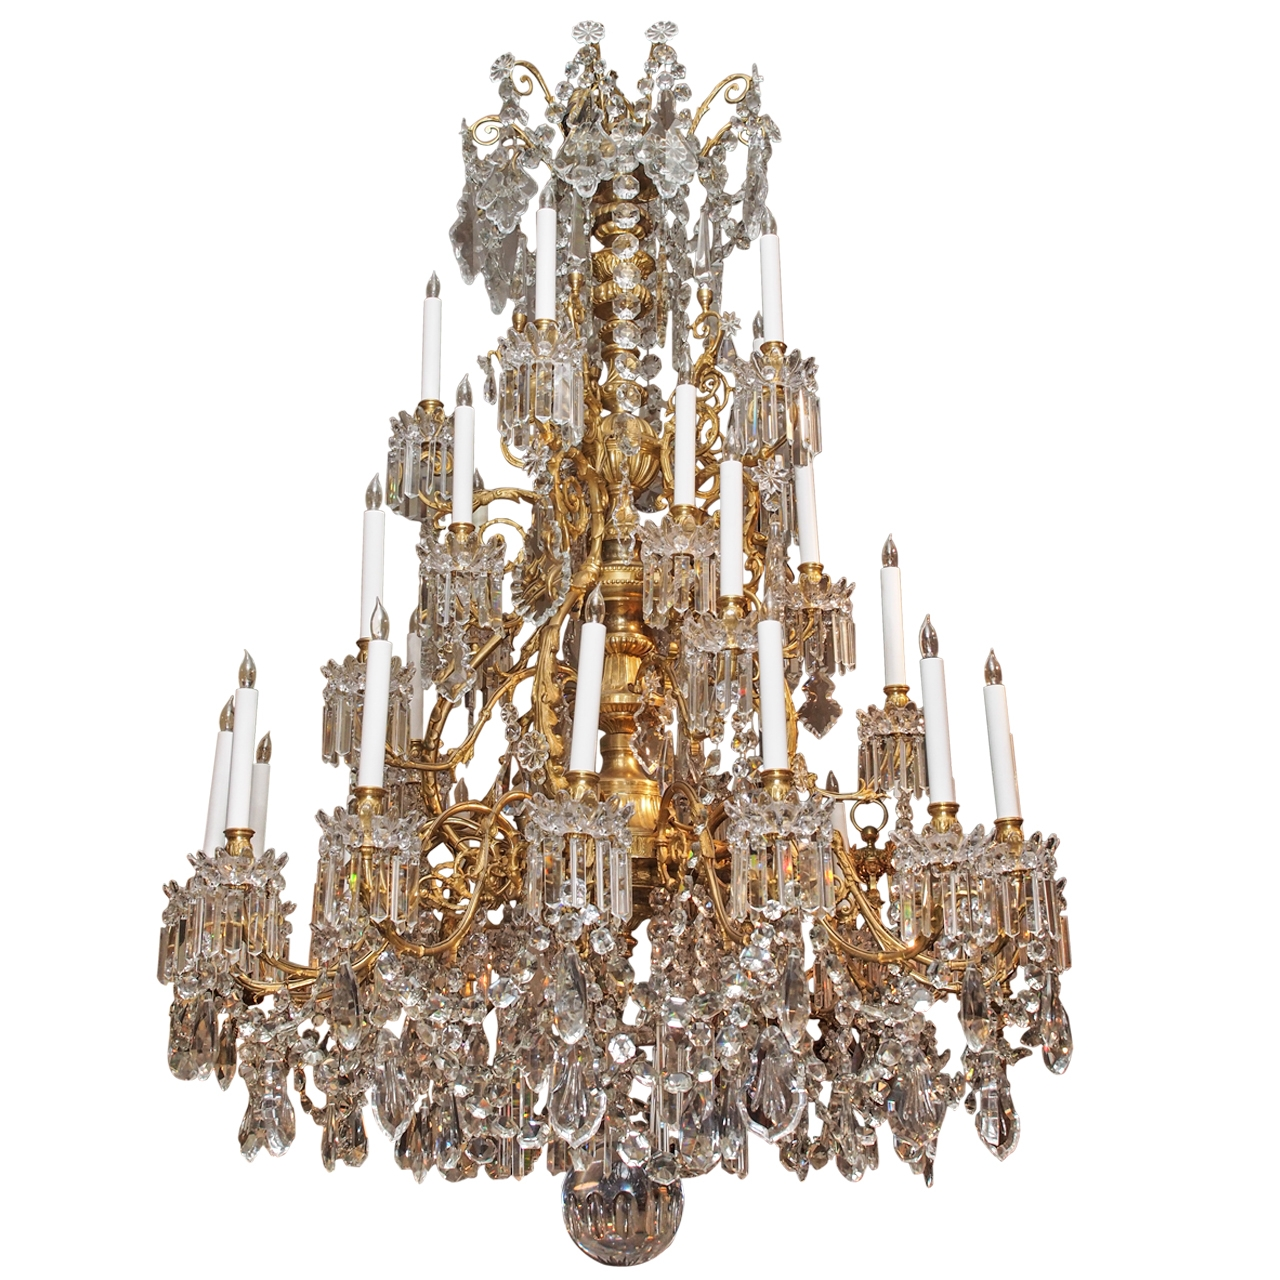 Magnificent Antique French Baccarat Crystal Chandelier Circa 1850 Regarding Antique French Chandeliers (View 10 of 15)